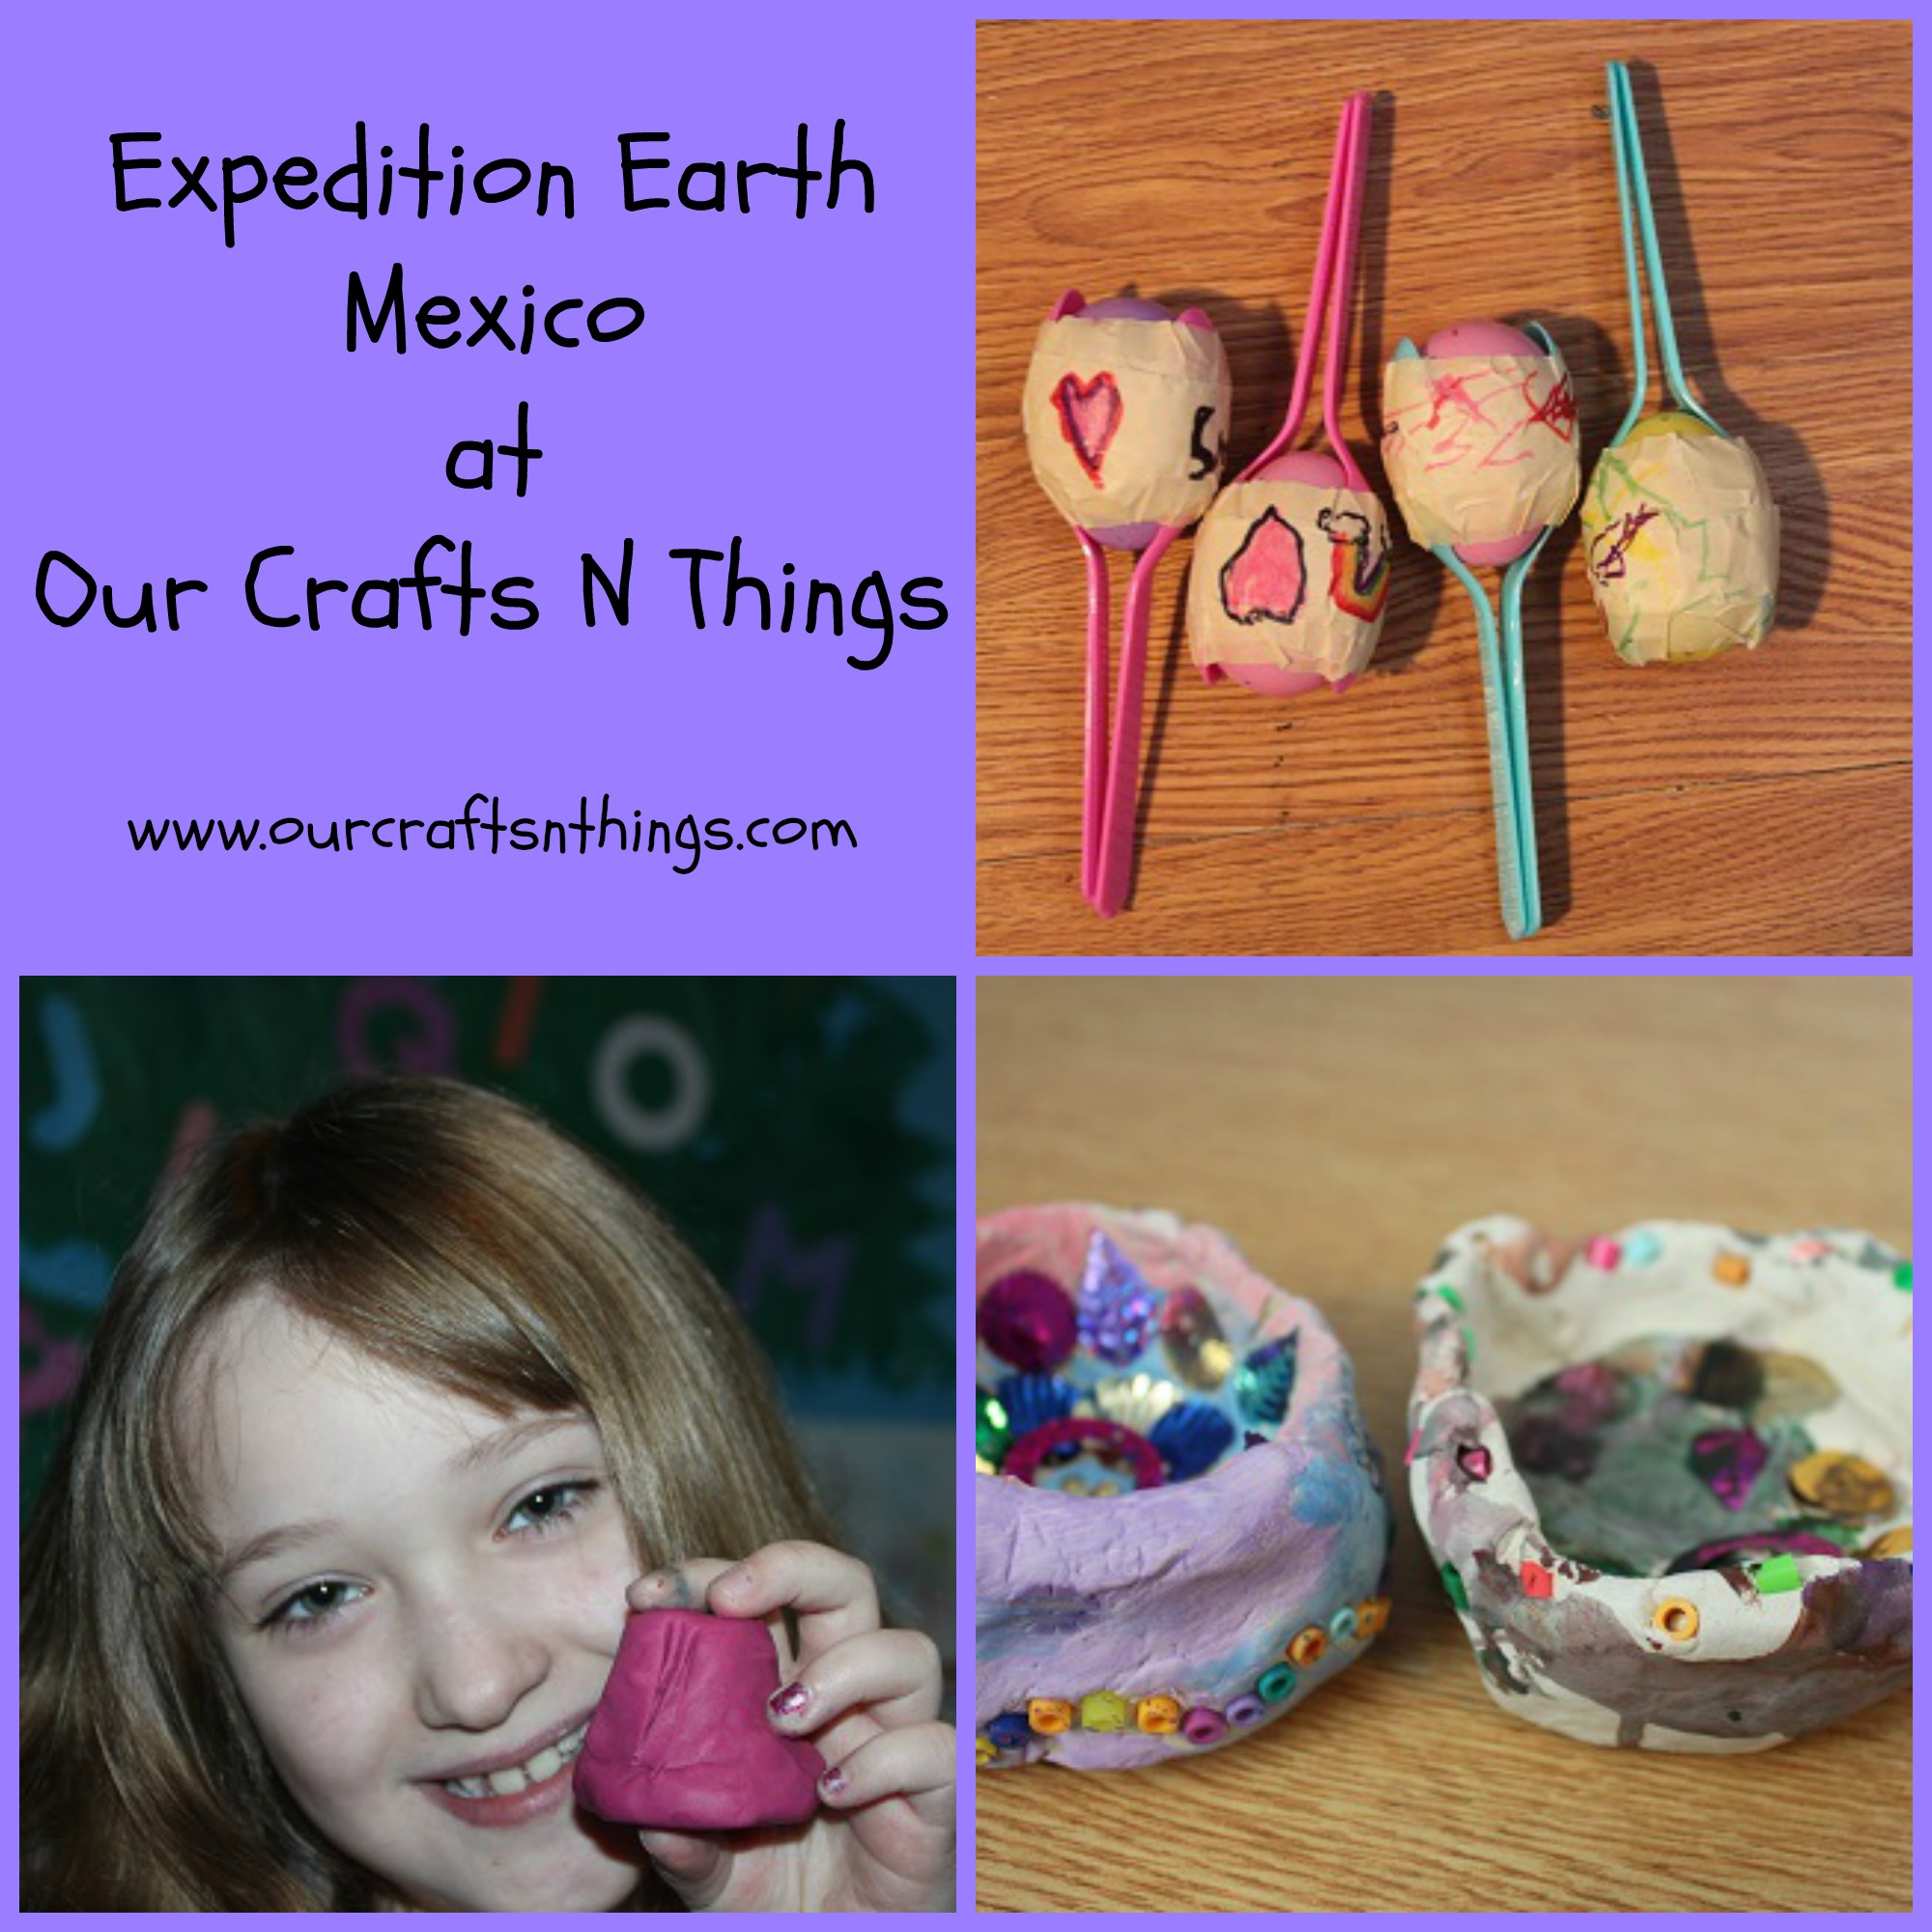 Expedition Earth Mexico